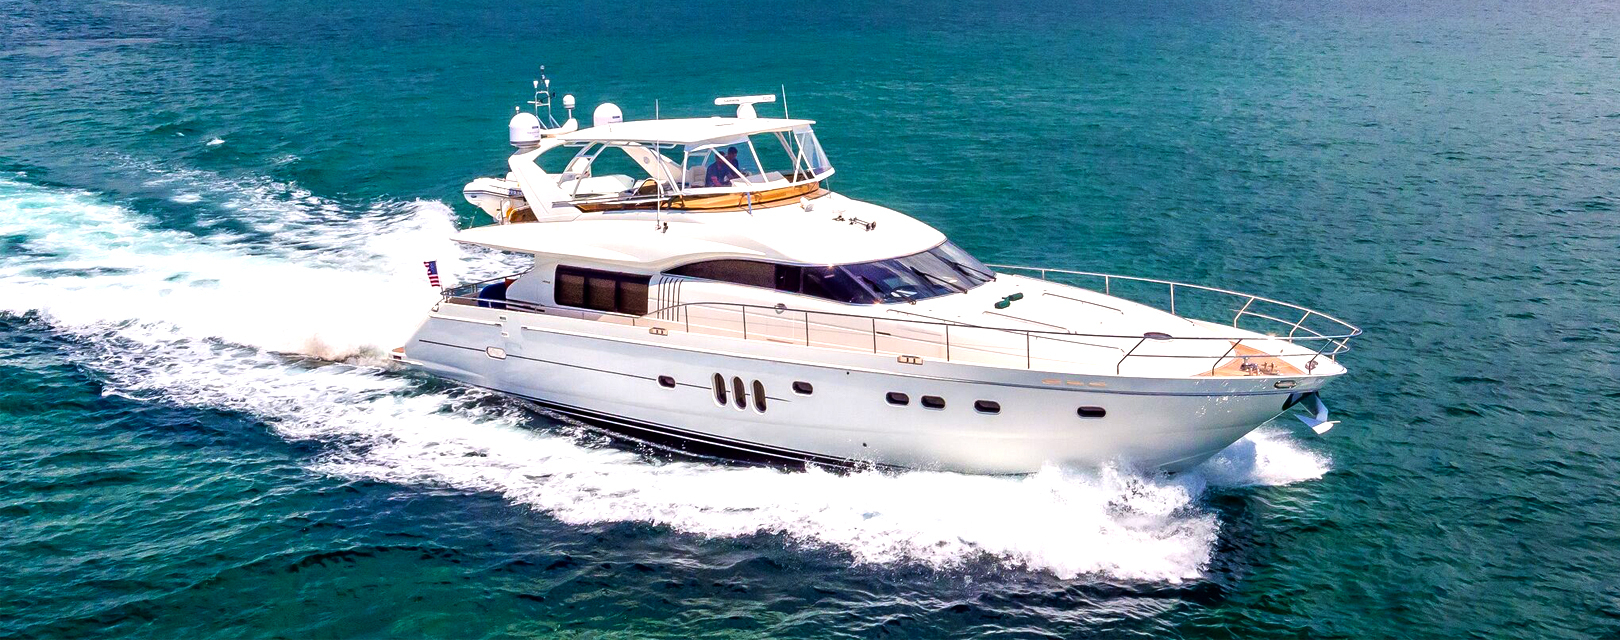 75 Viking Sport Cruiser With Jet Ski Affordable And Fun Yacht Charters